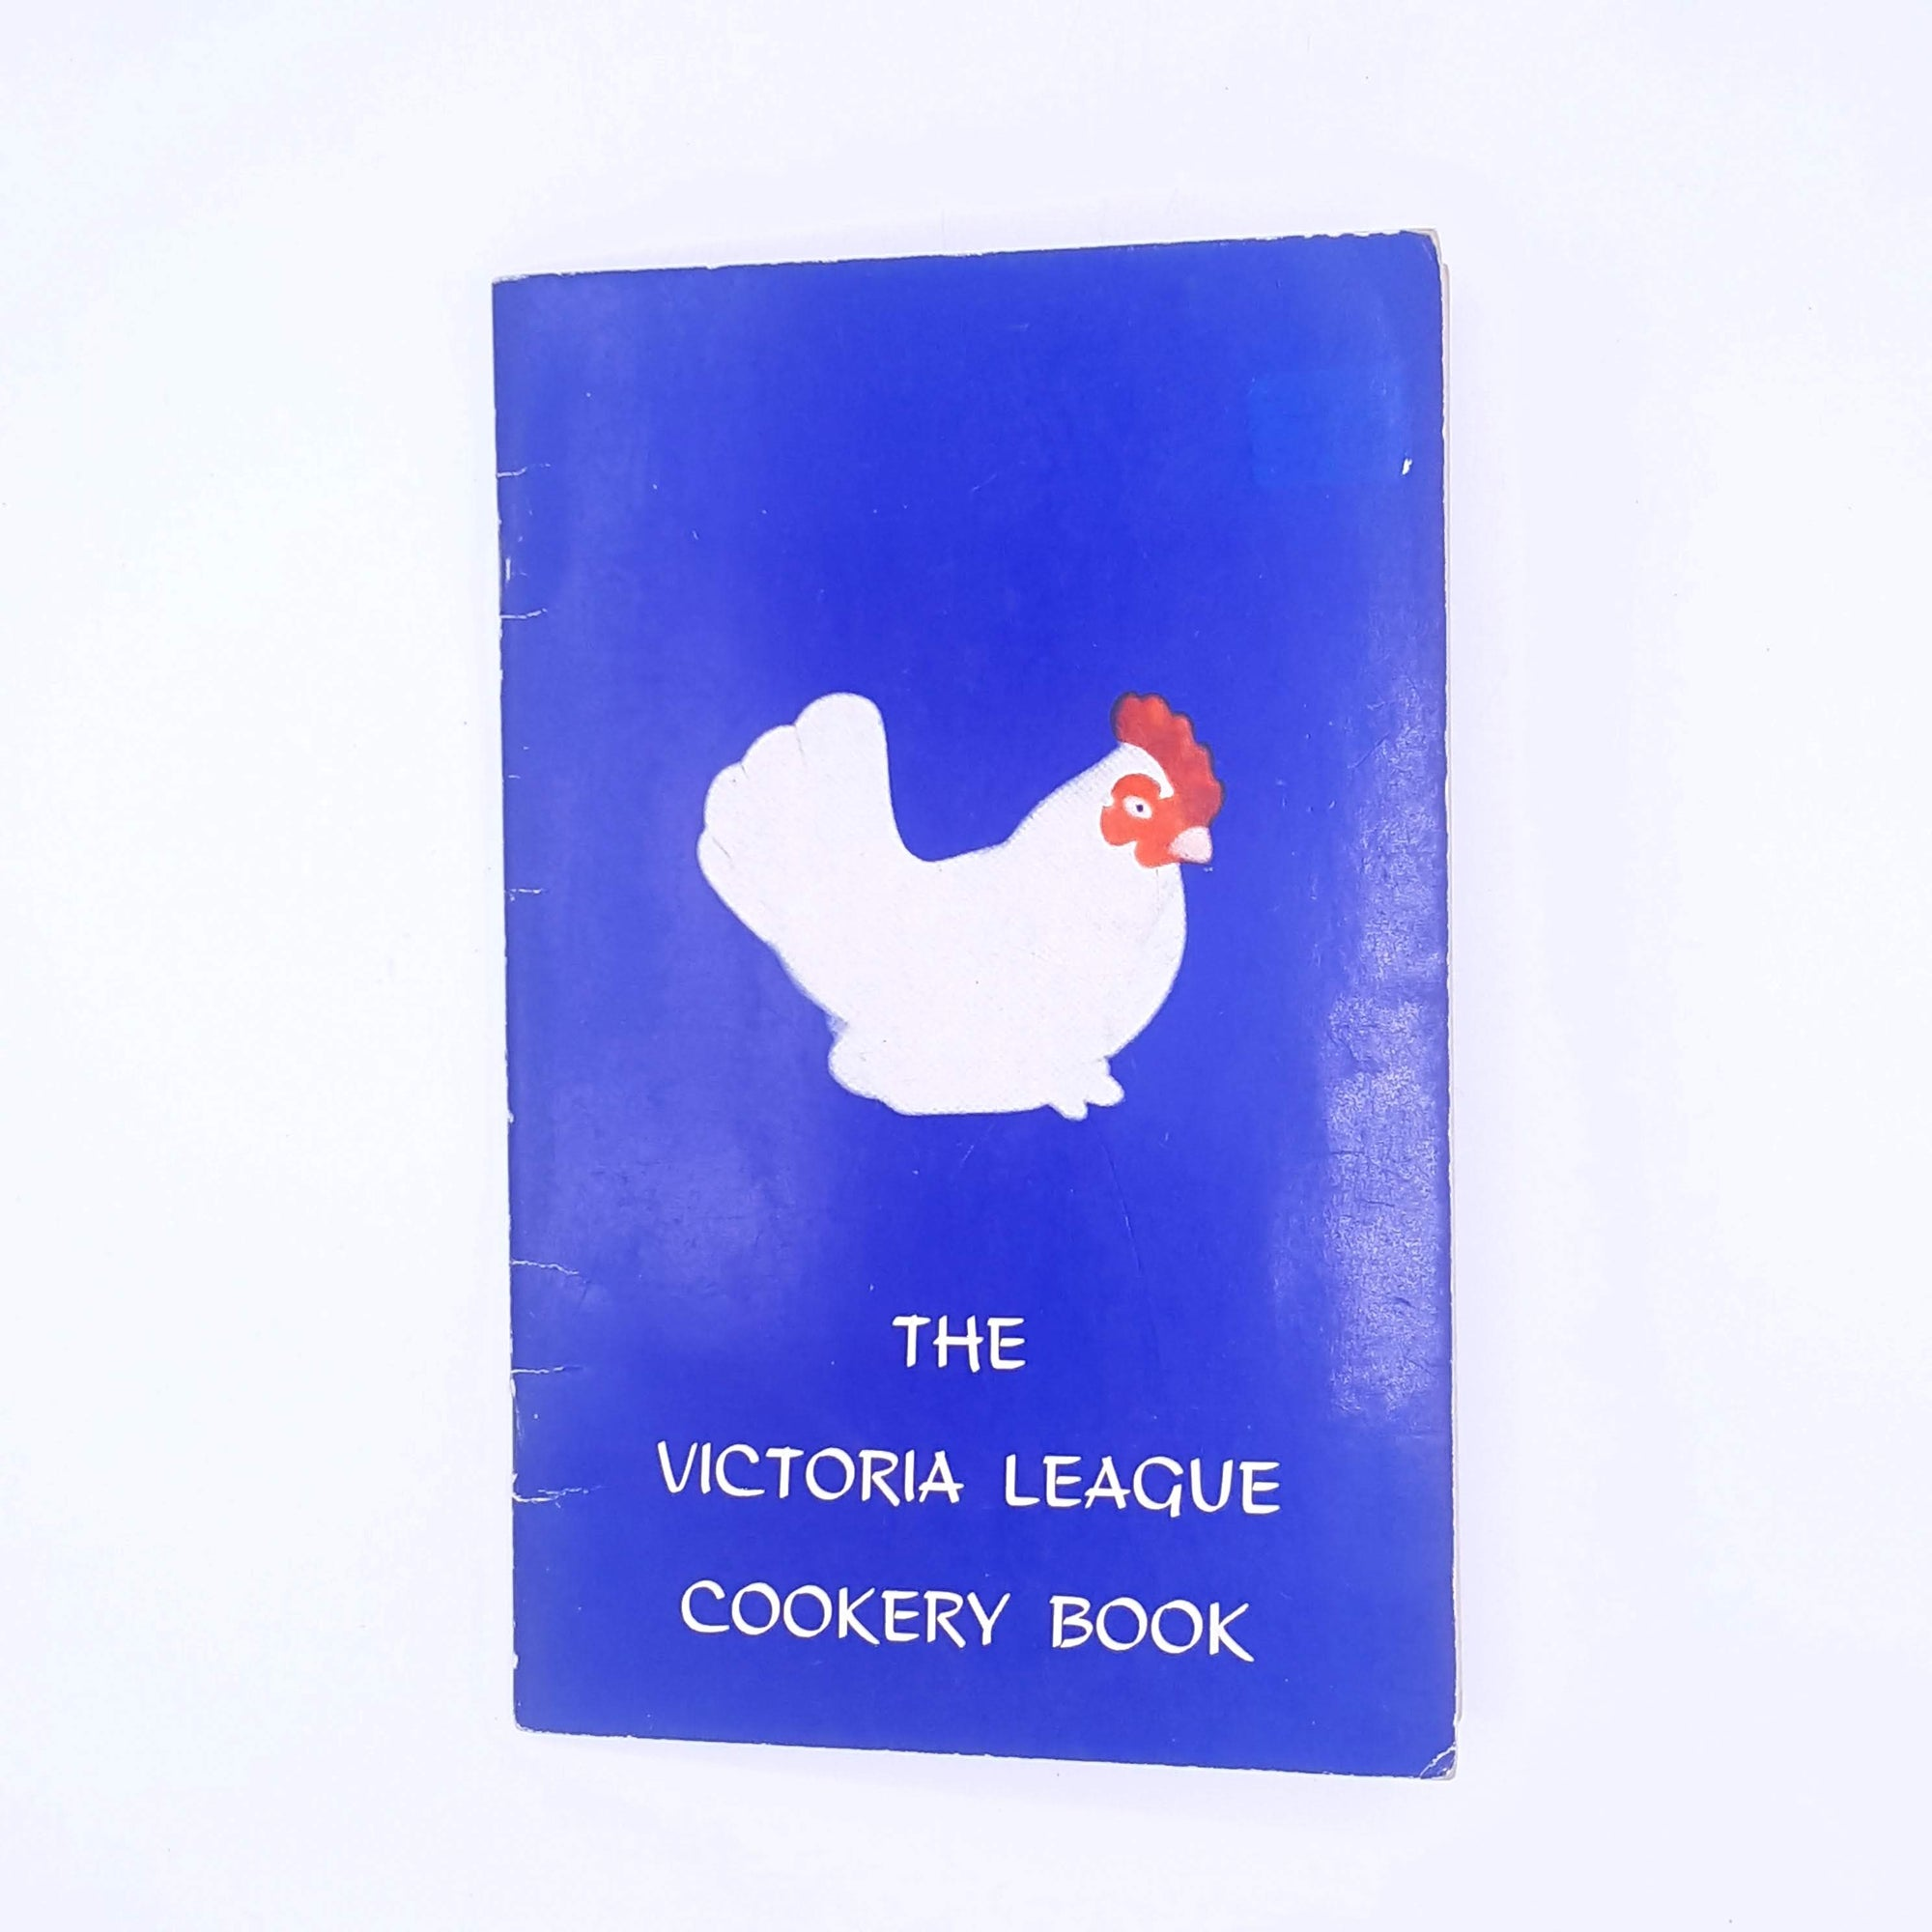 The Victoria League Cookery Book by The Victoria League for Commonwealth Friendship in South Australia